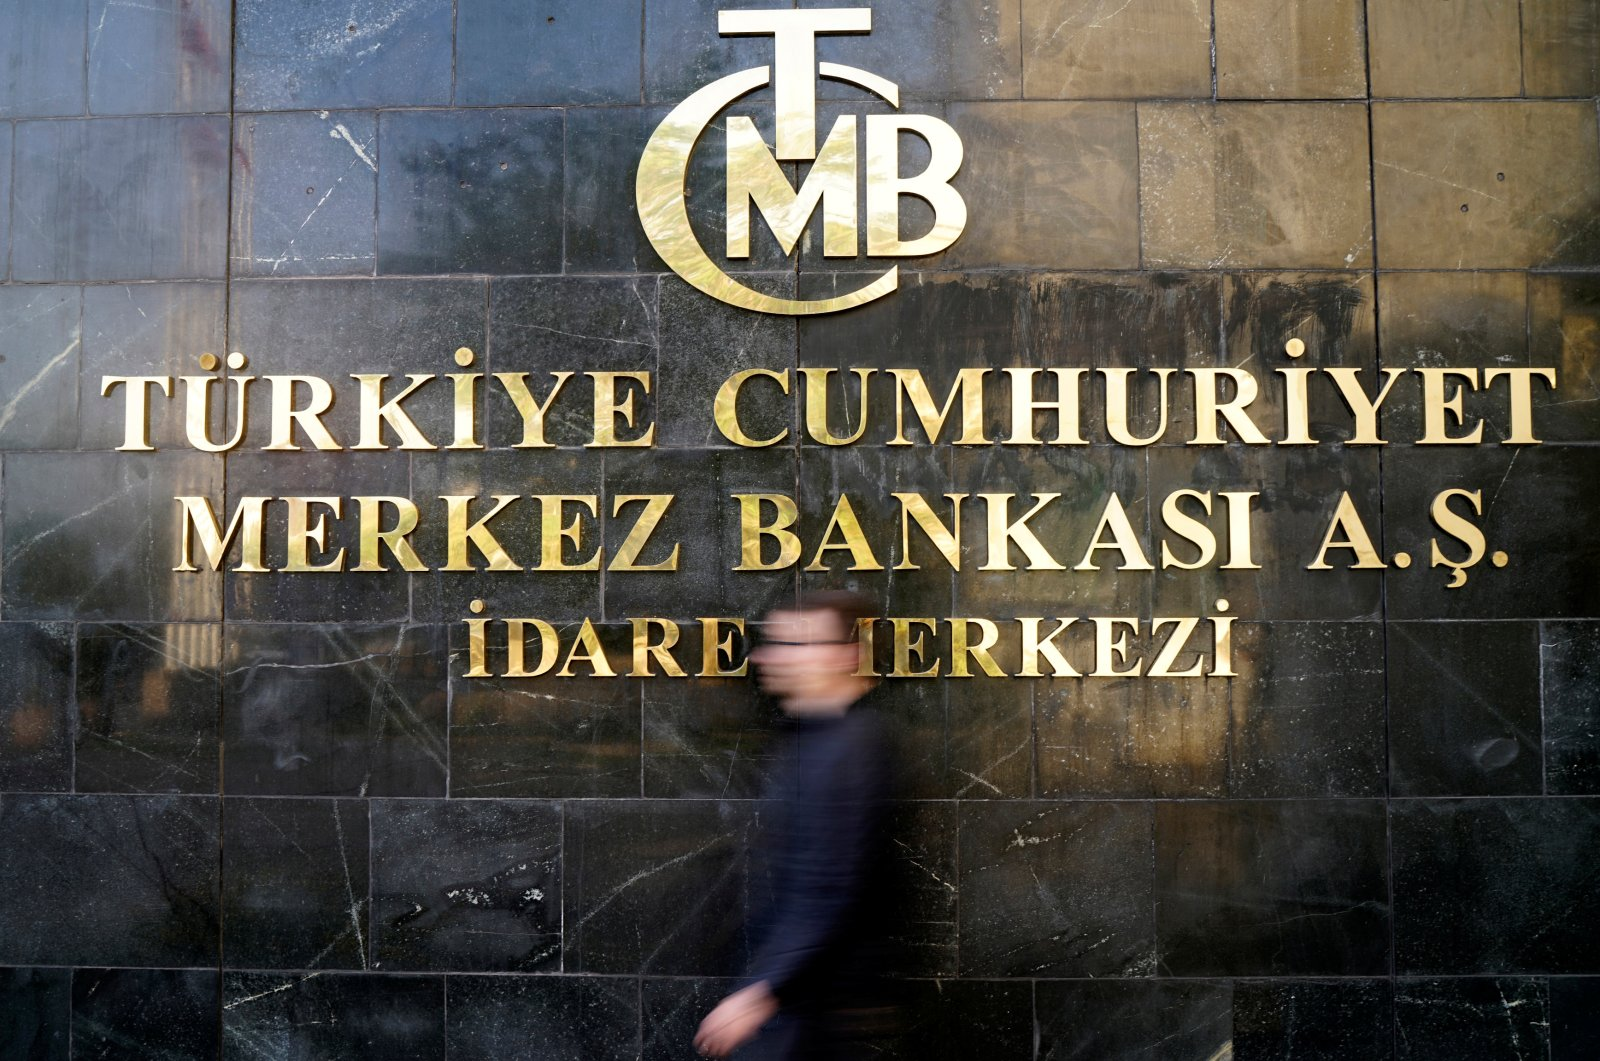 A man leaves Turkey's Central Bank headquarters in Ankara, Turkey, April 19, 2015. (Reuters File Photo)